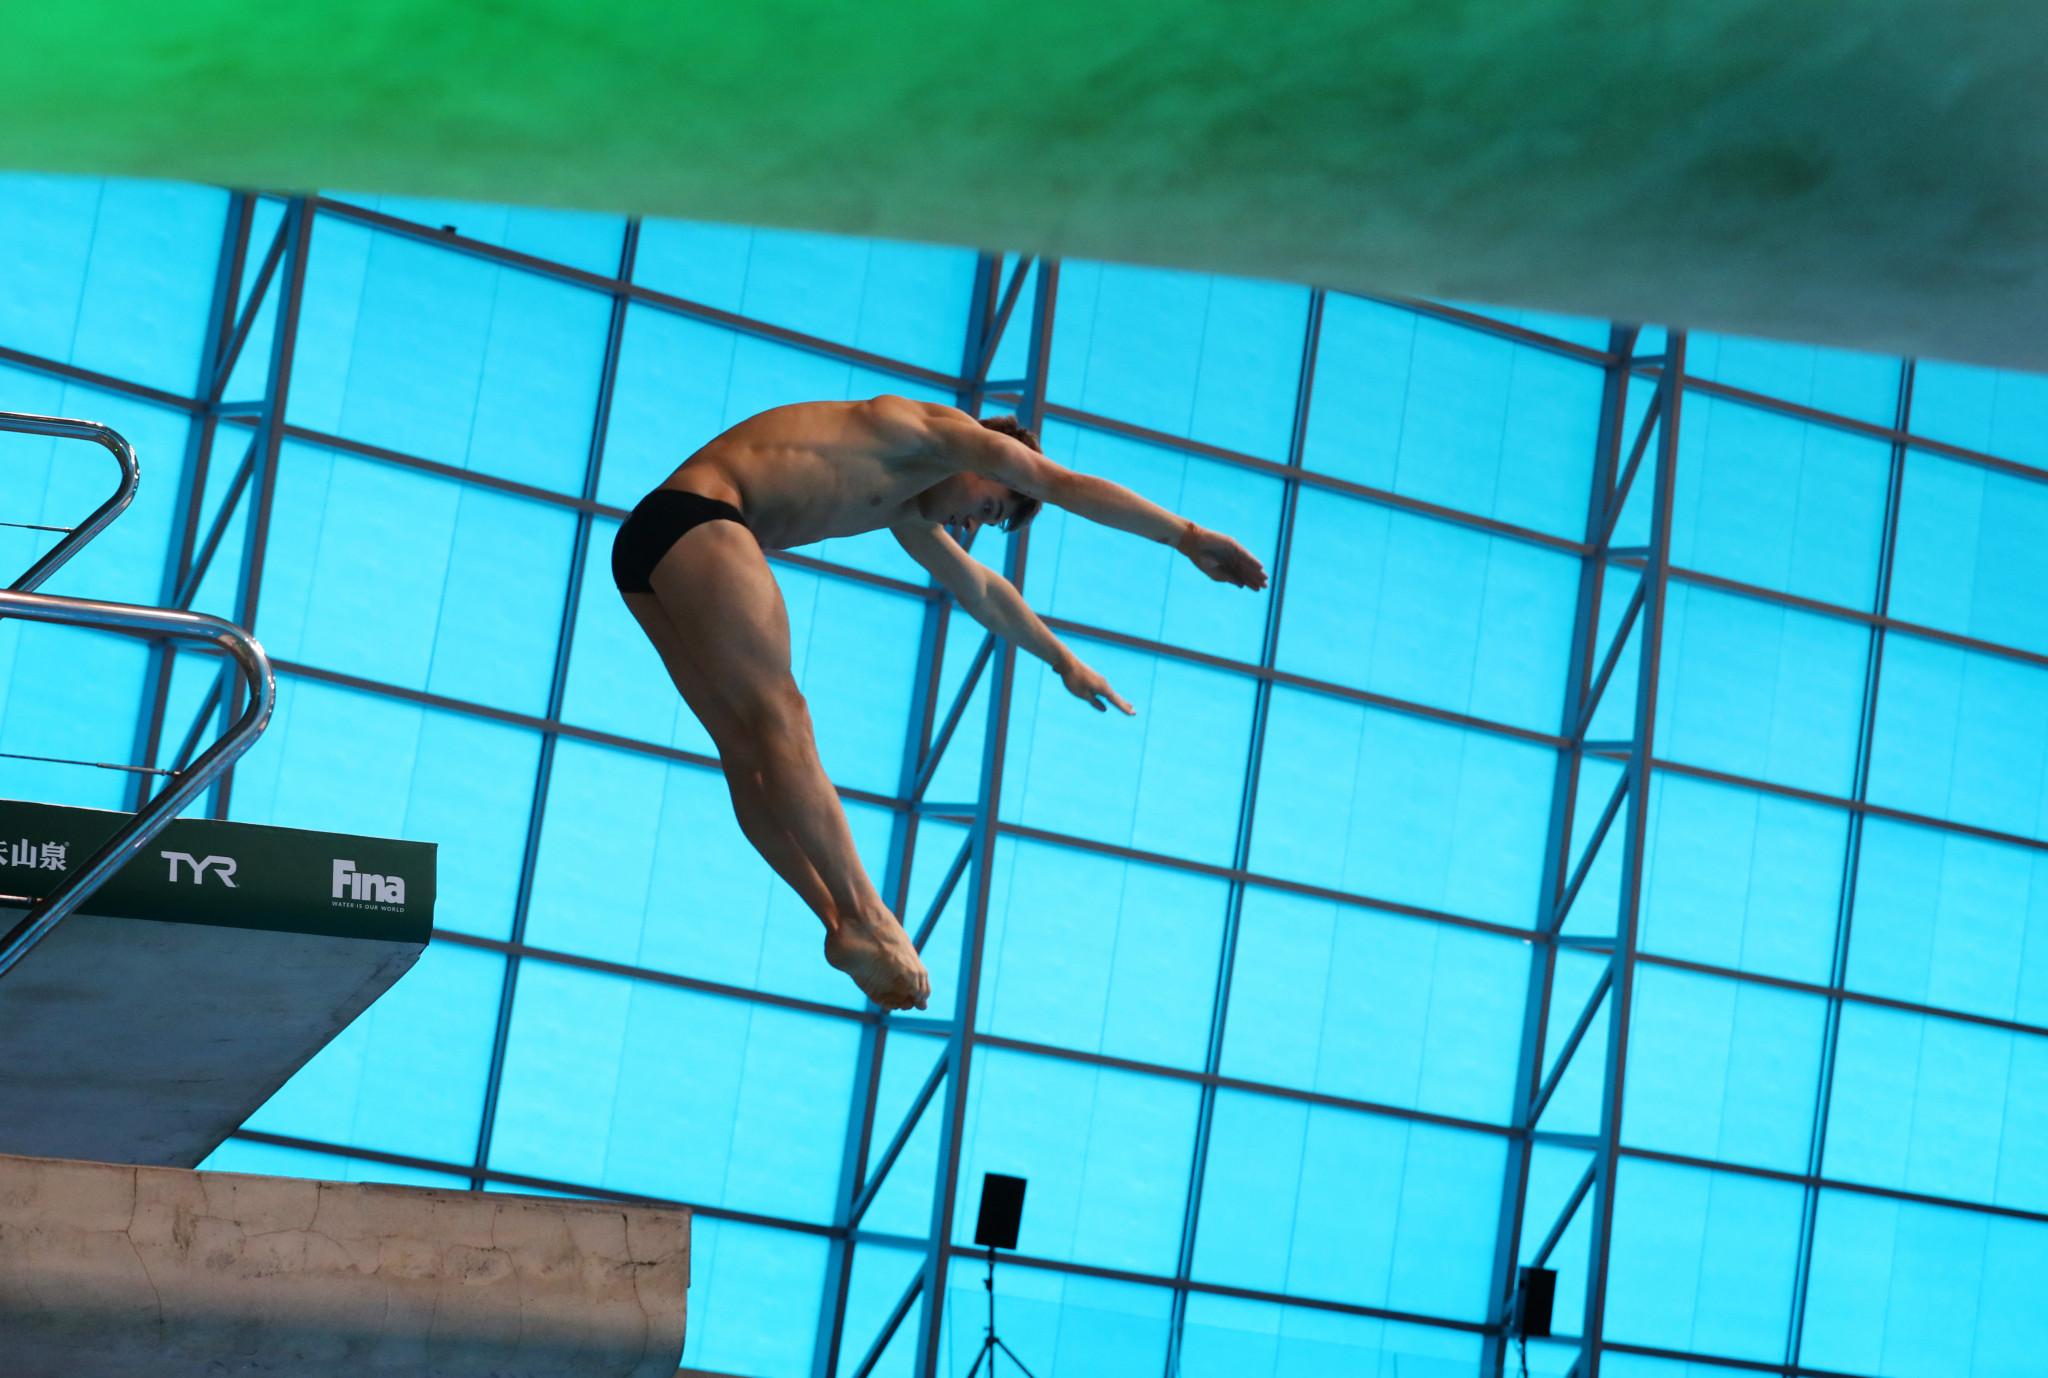 FINA announce schedule for 2020 Diving World Series